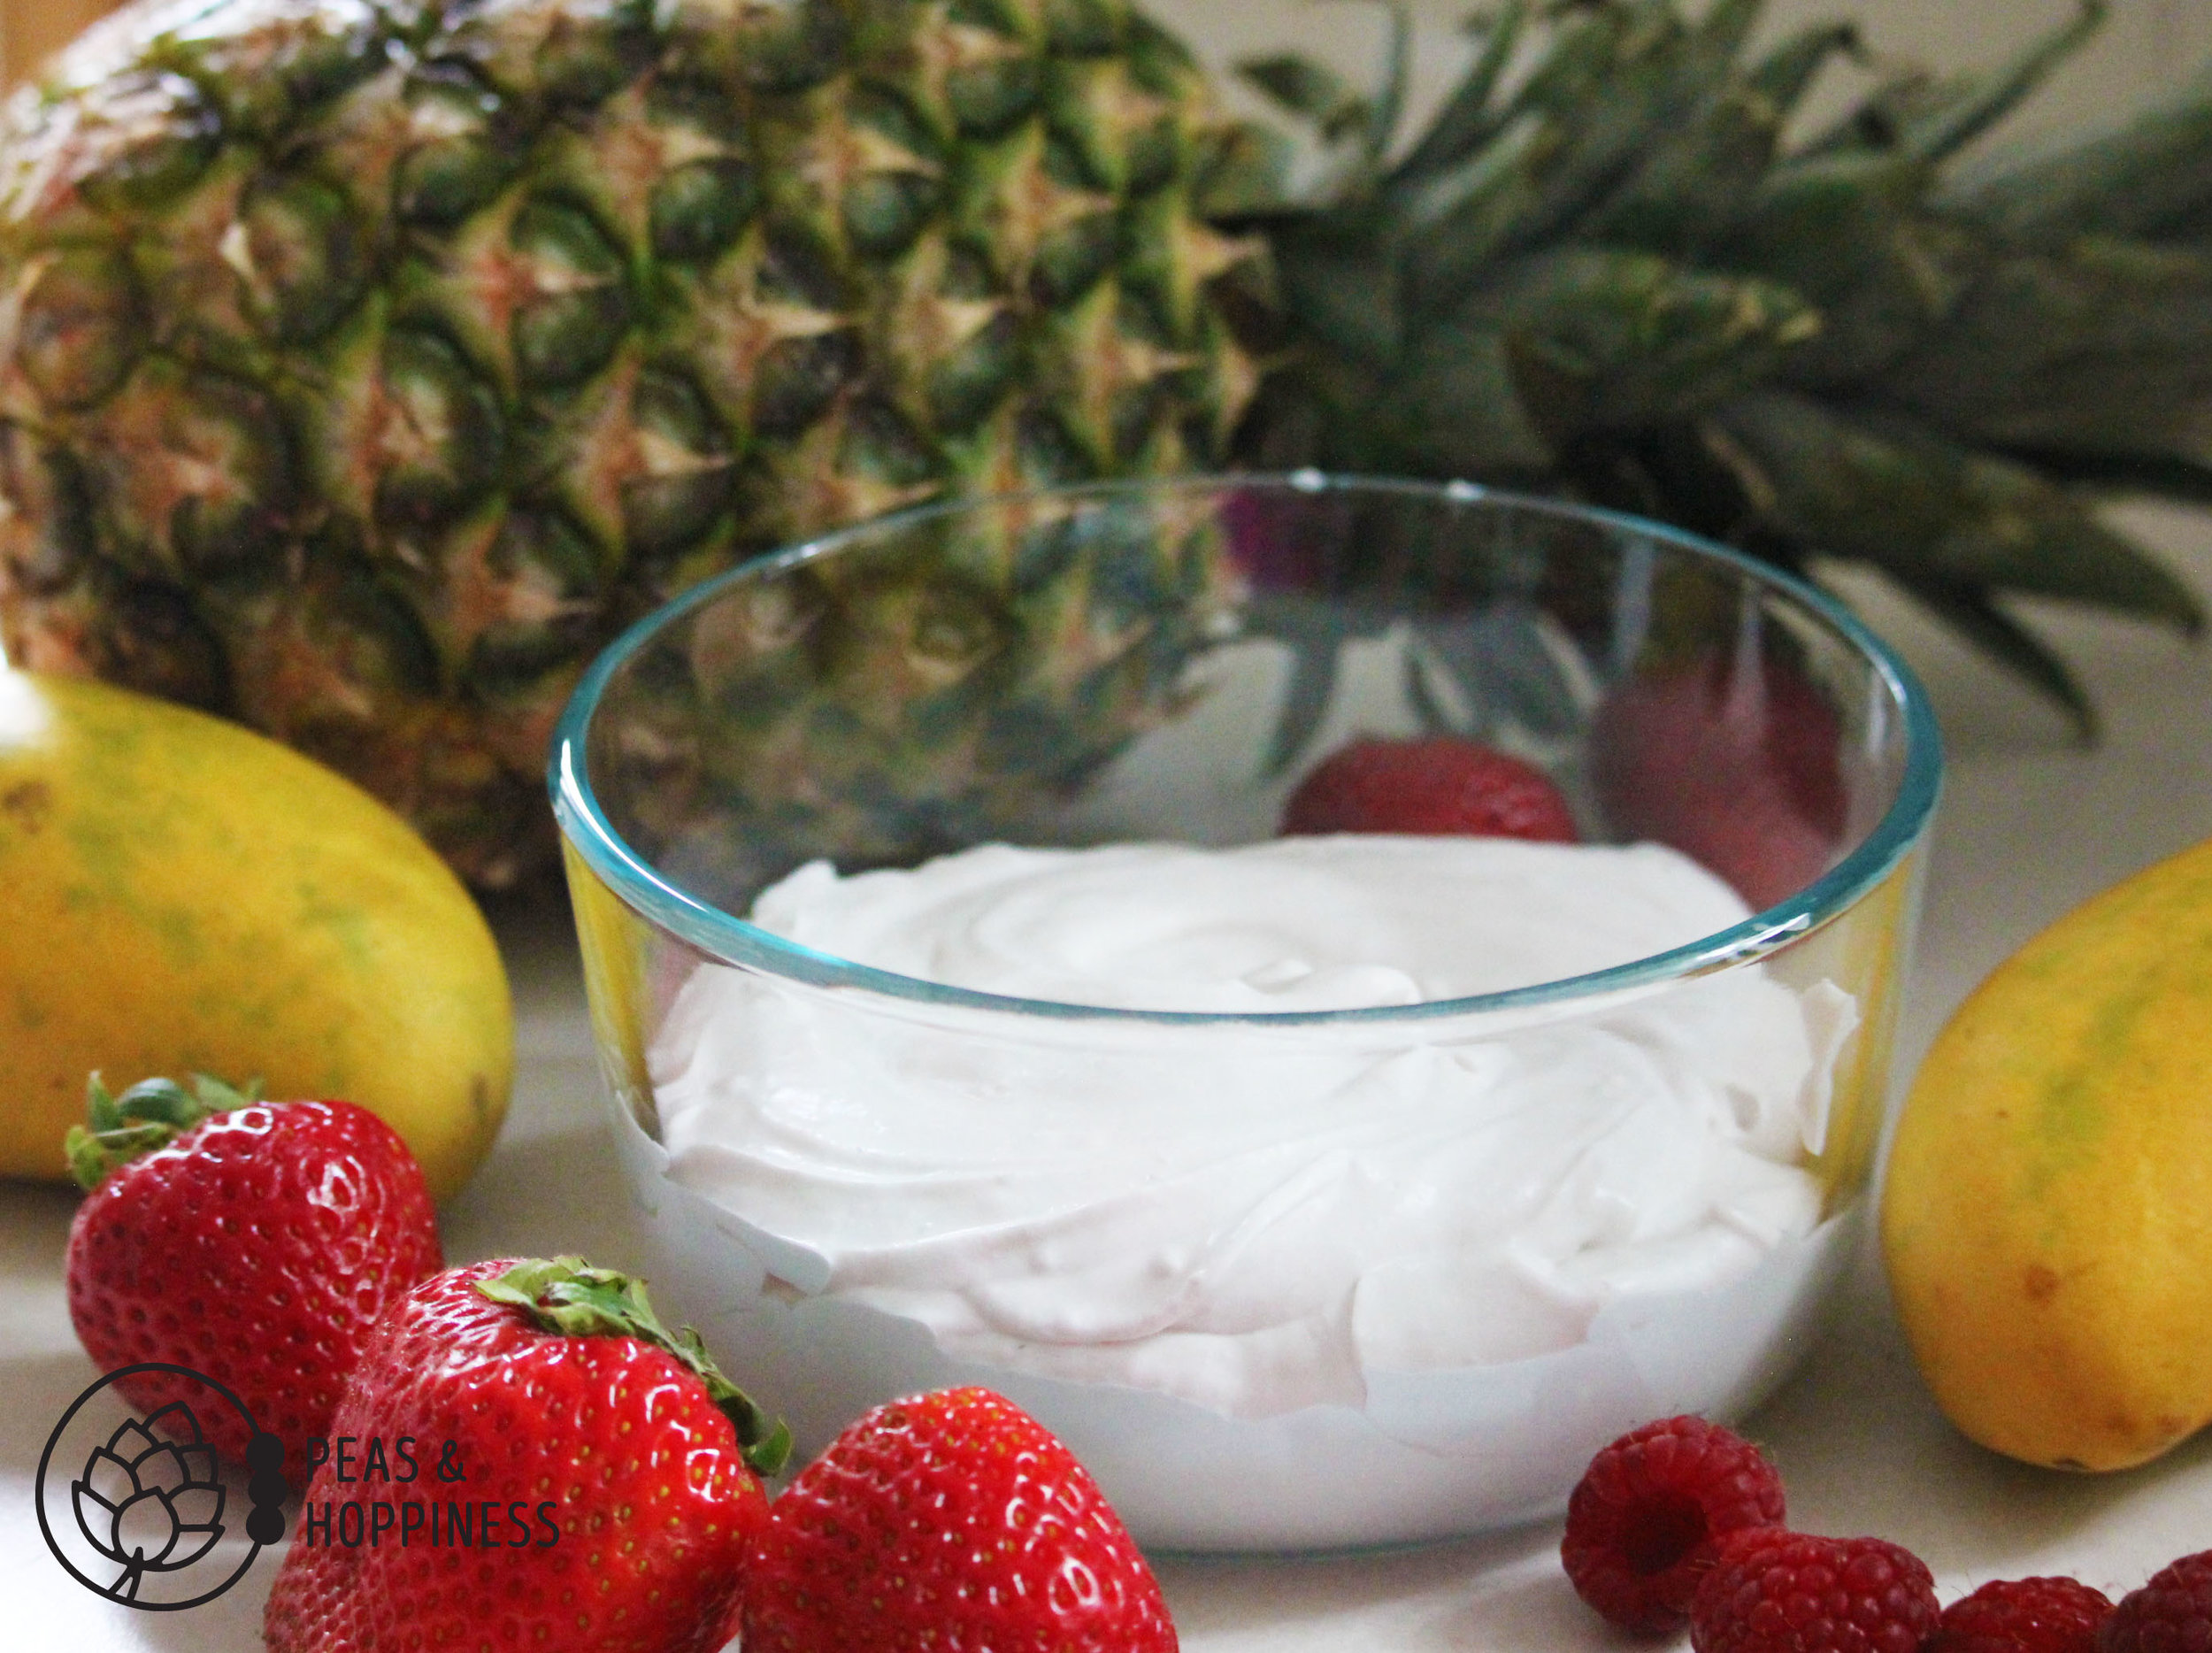 Dairy Free Pina Colada Fruit Dip from Peas and Hoppiness - www.peasandhoppiness.com